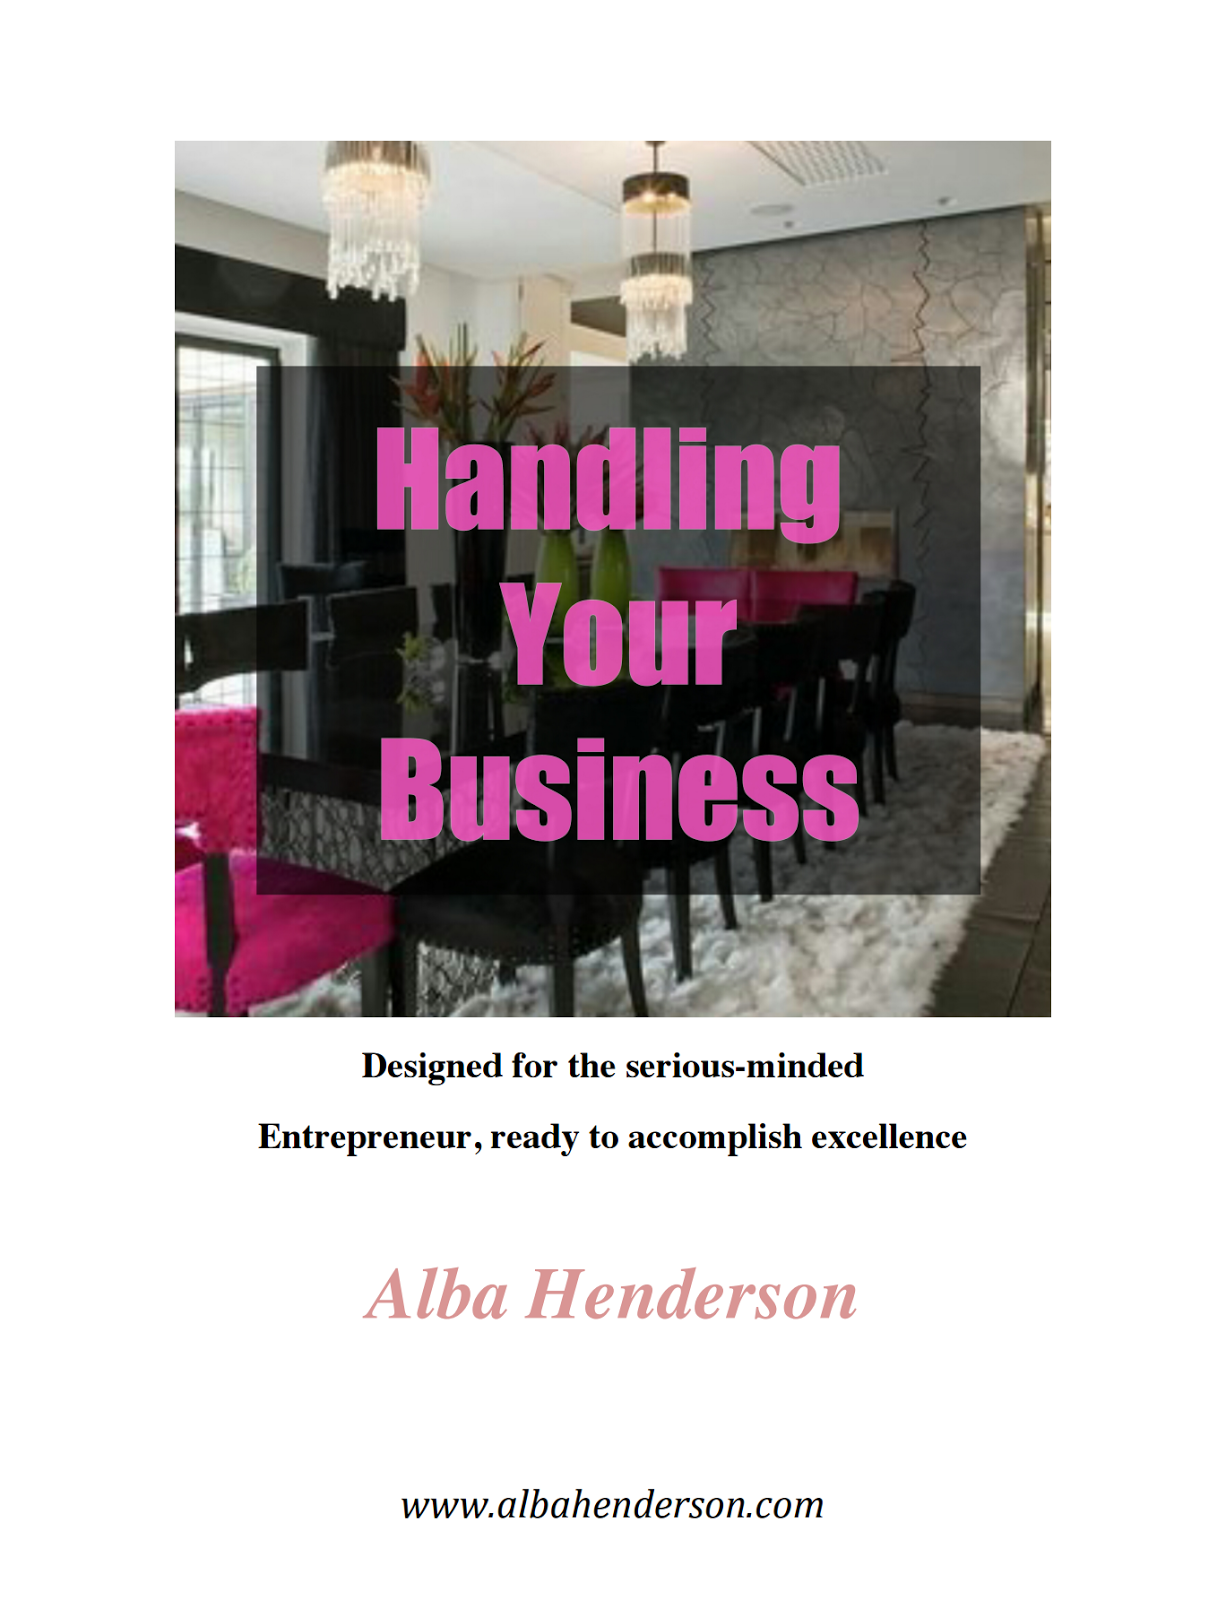 Handling Your Business Ebook - Now Only $1.00